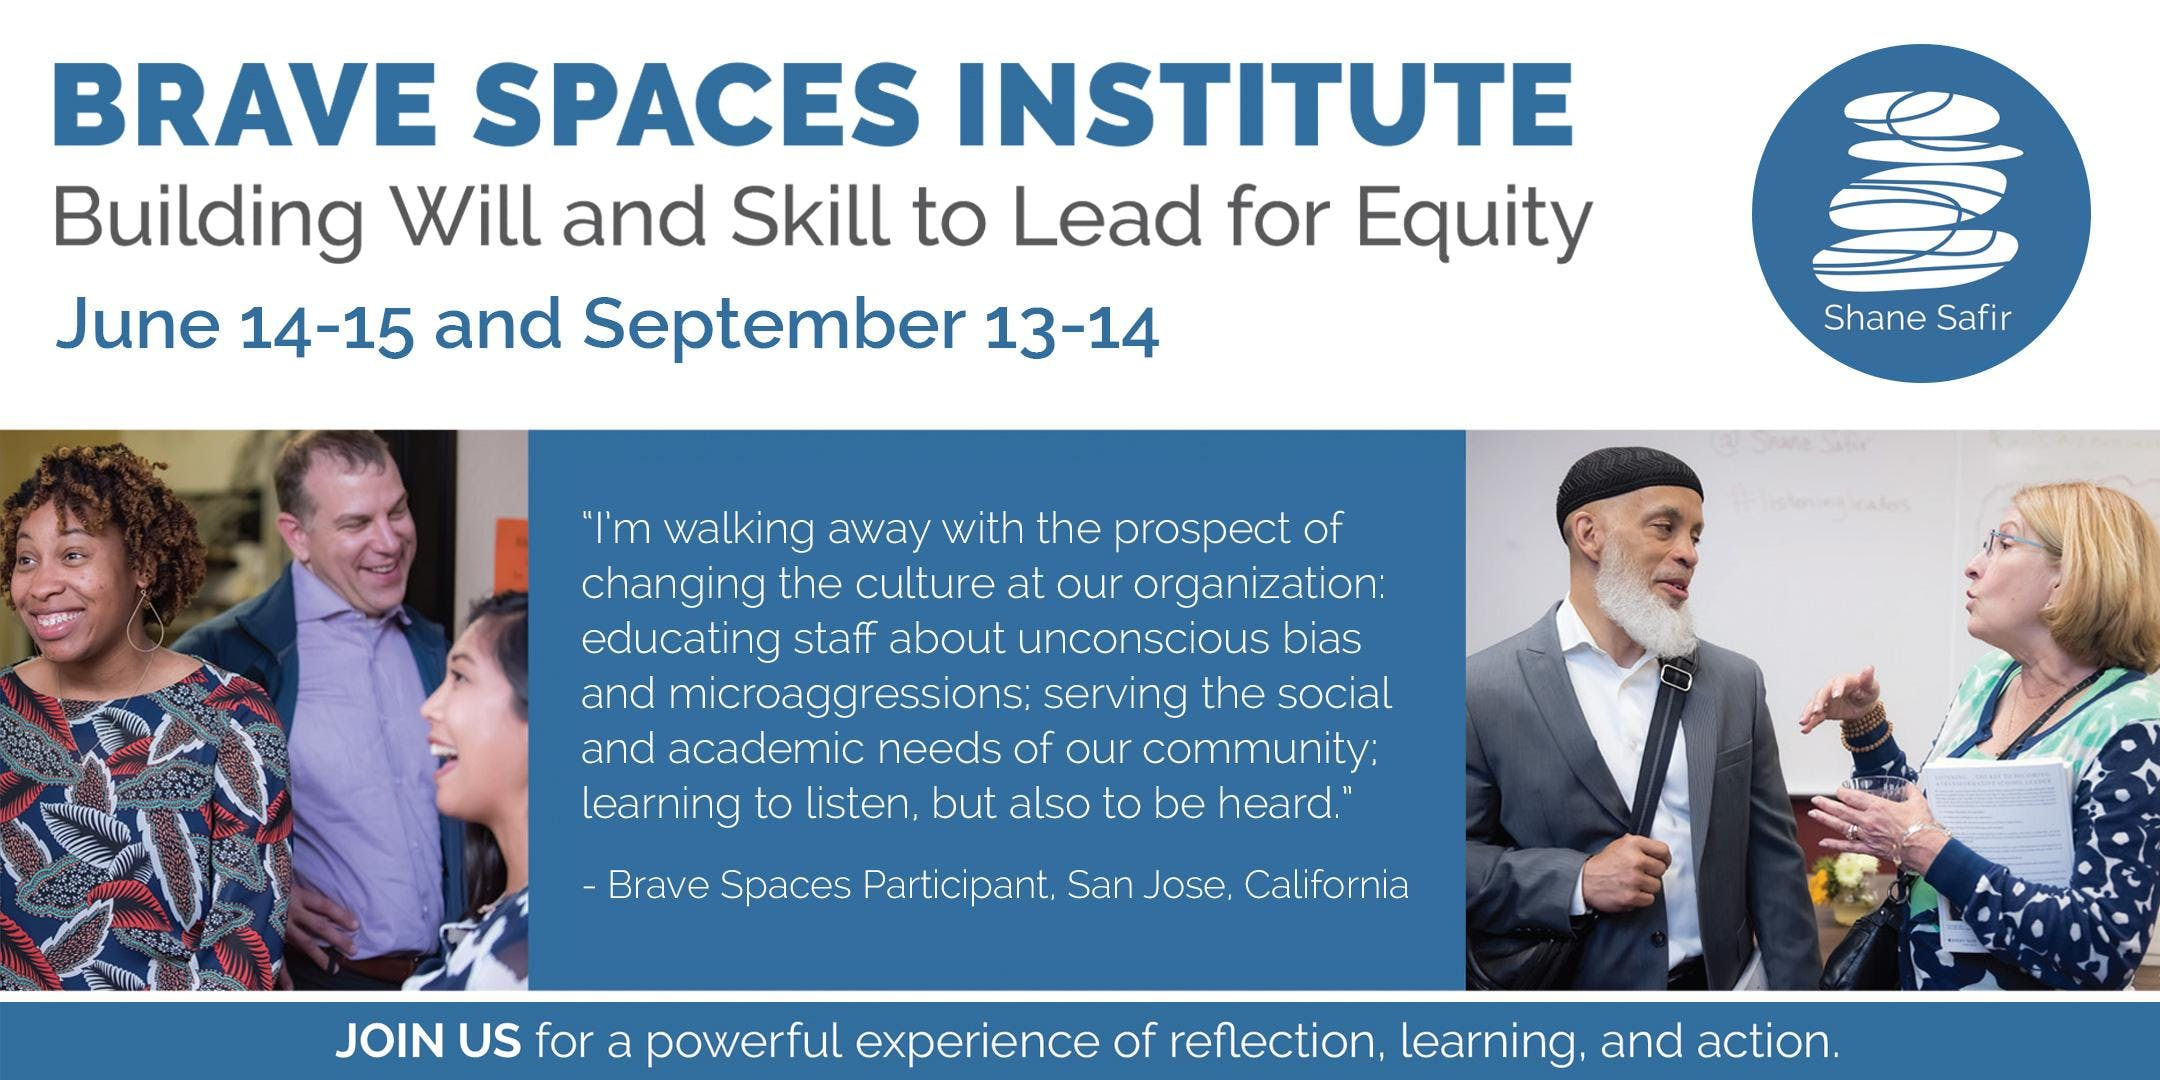 BRAVE SPACES INSTITUTE: Building Will and Skill to Lead for Equity